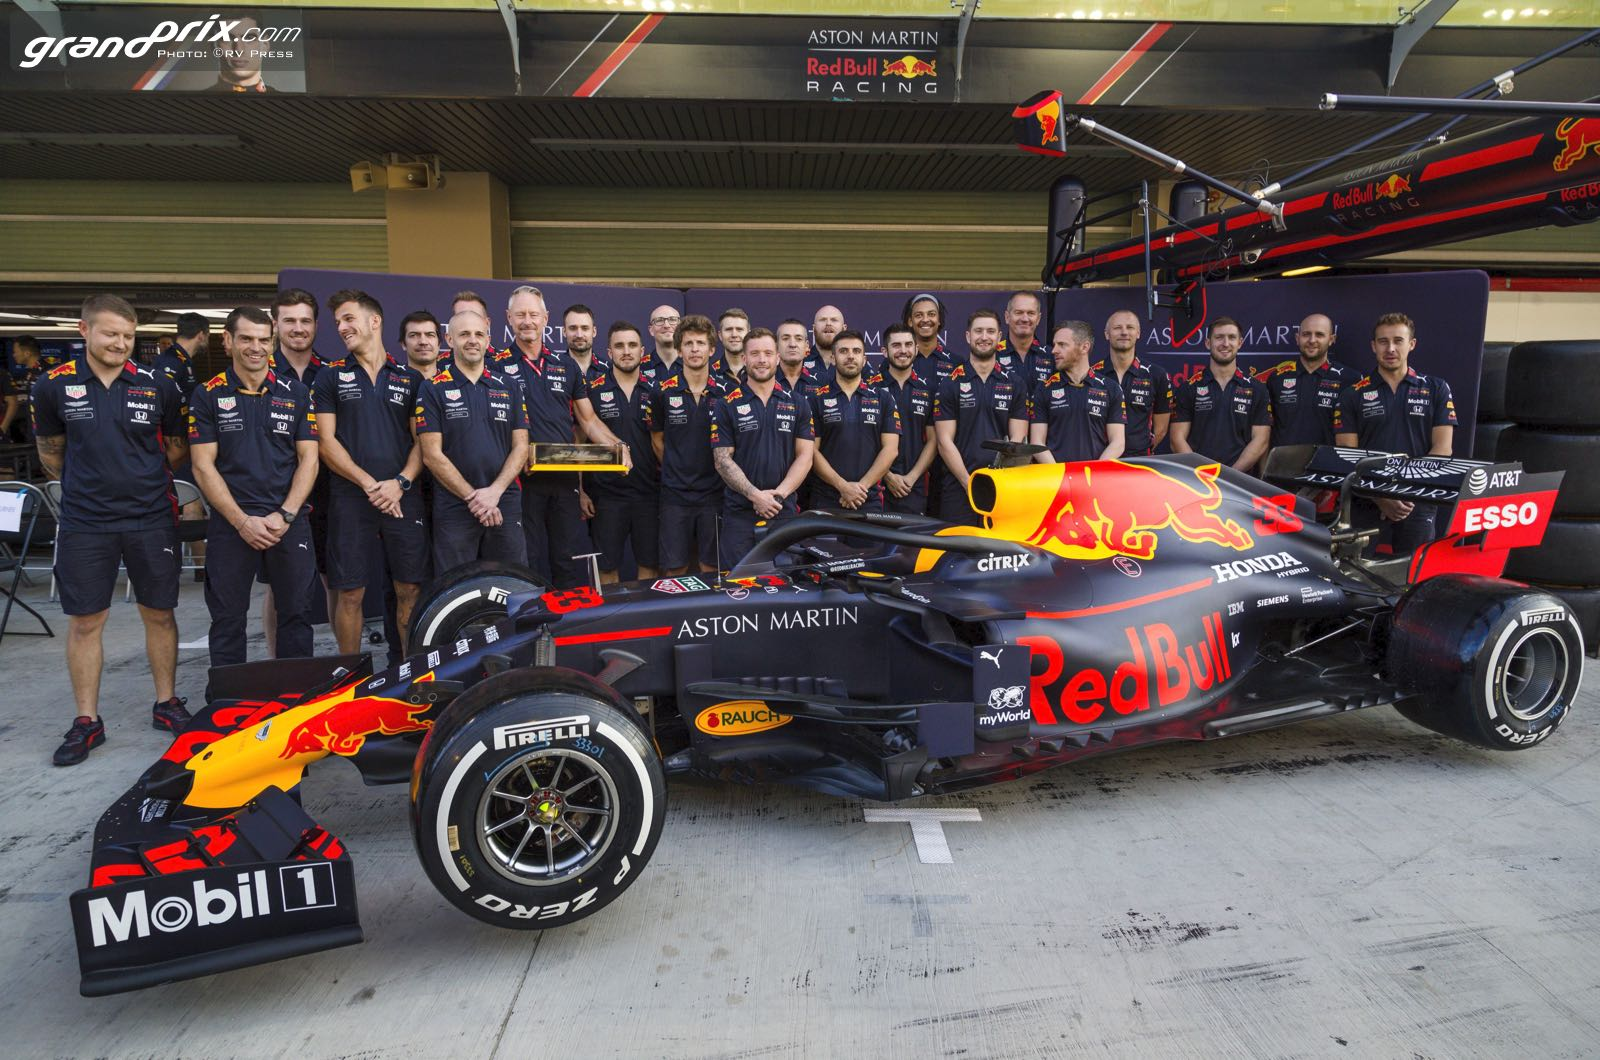 Red Bull To Launch Car Day After Ferrari